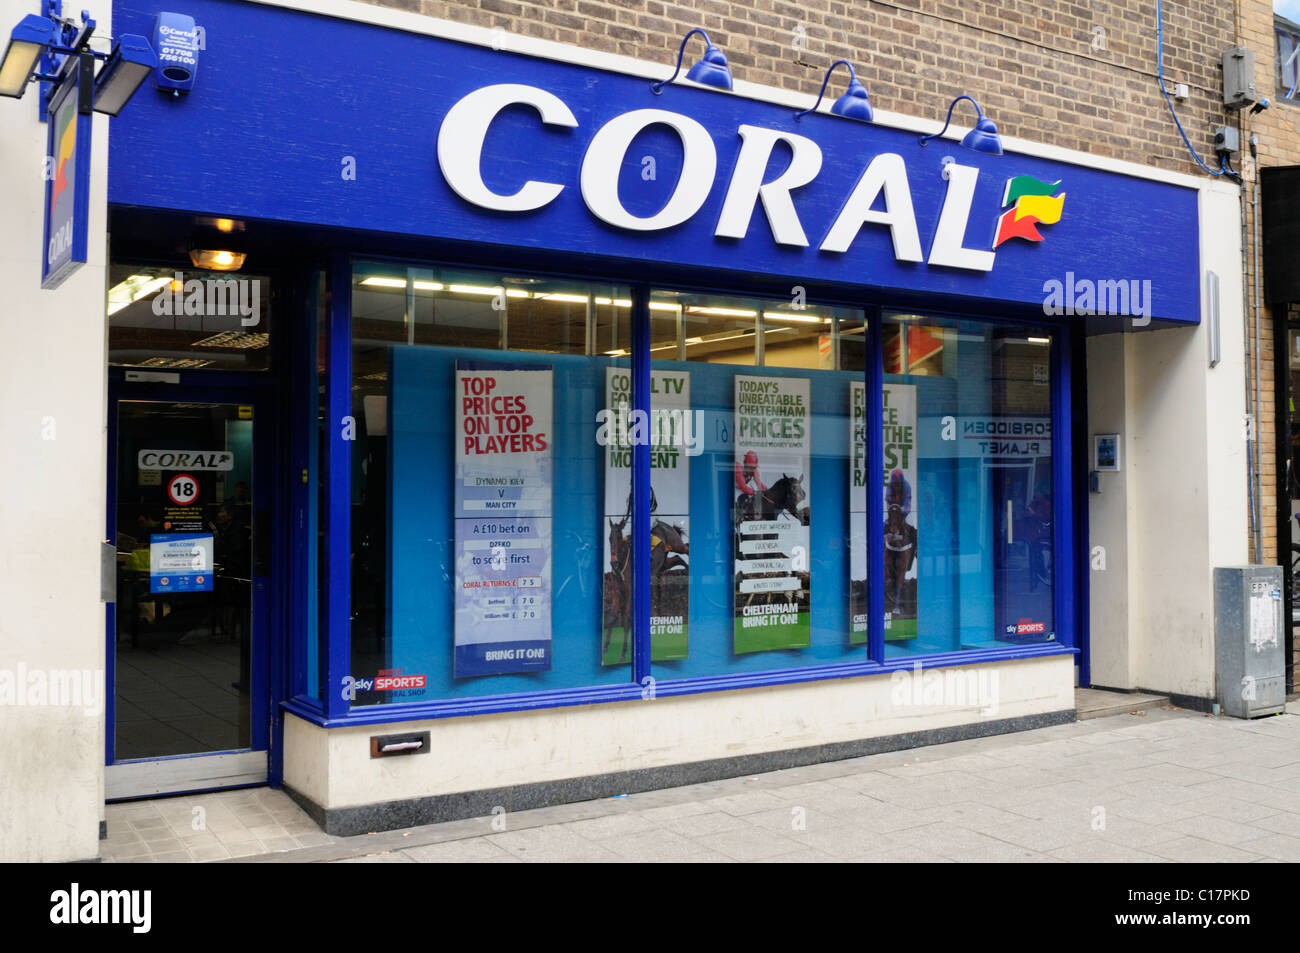 Coral uk betting shops scotland ergates industrial area nicosia betting